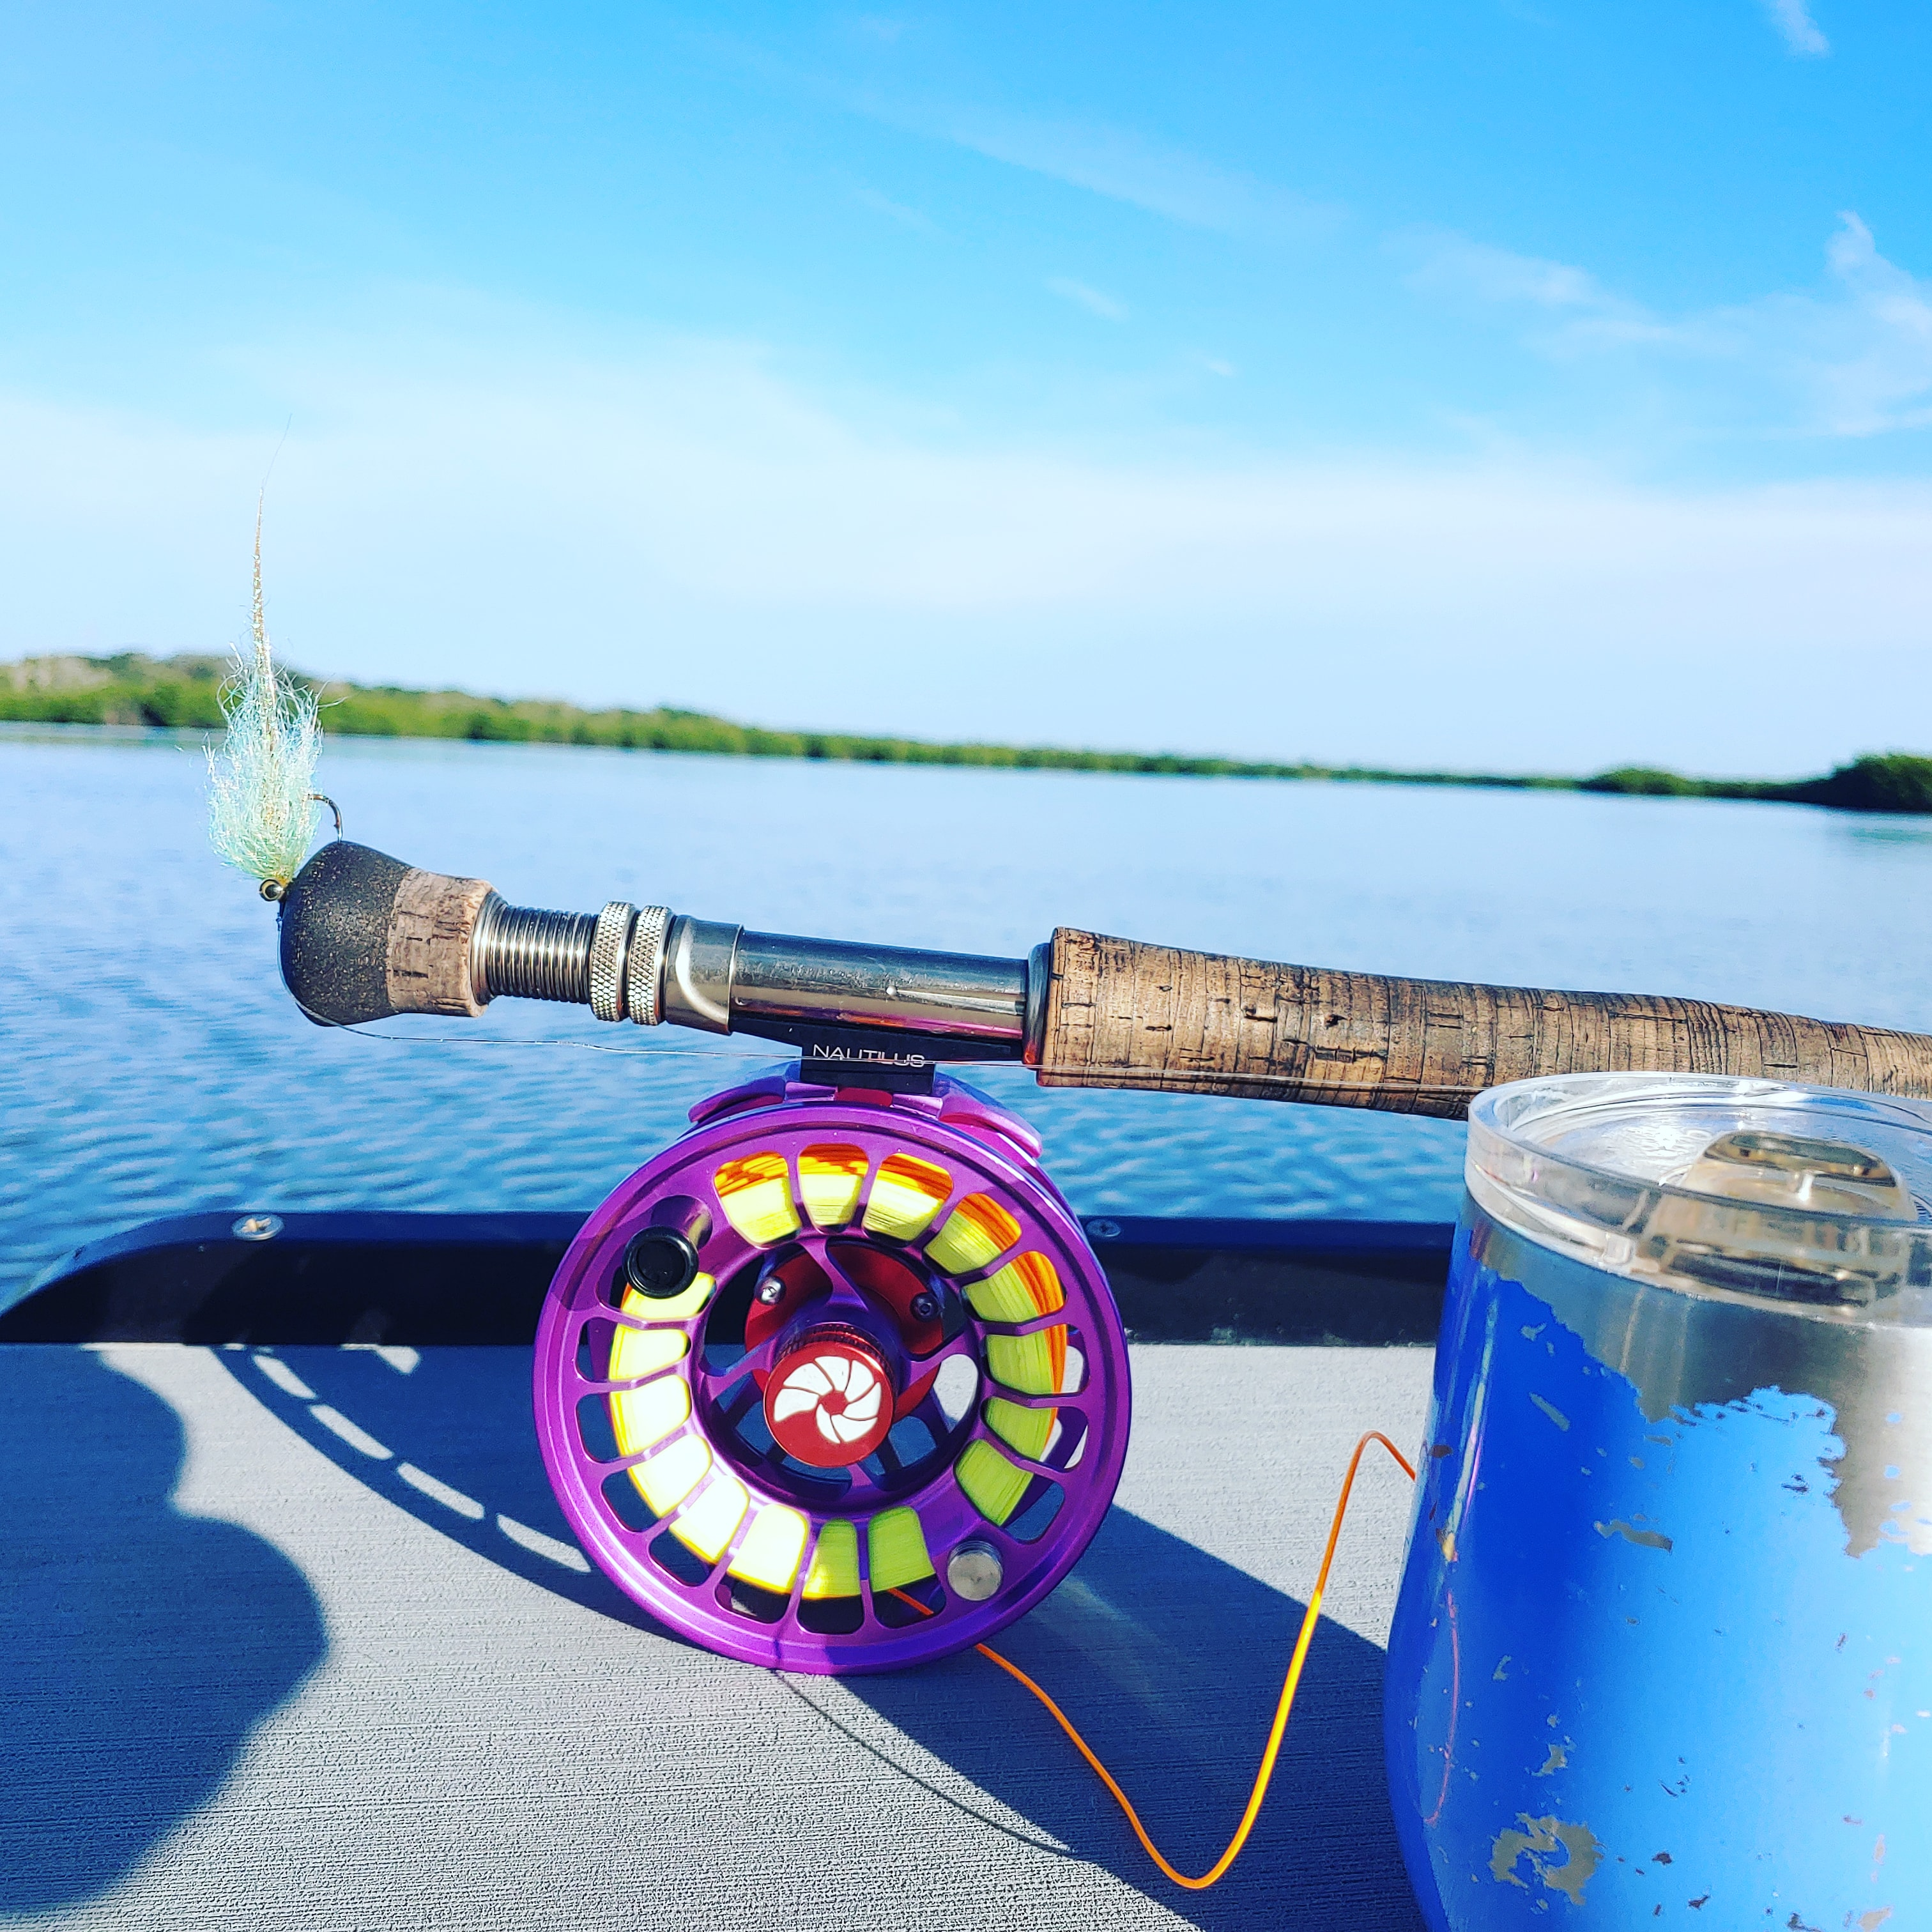 Nautilus Reels|Captain John Tarr|Tailhunter Outdoor Adventures|Fly Fishing